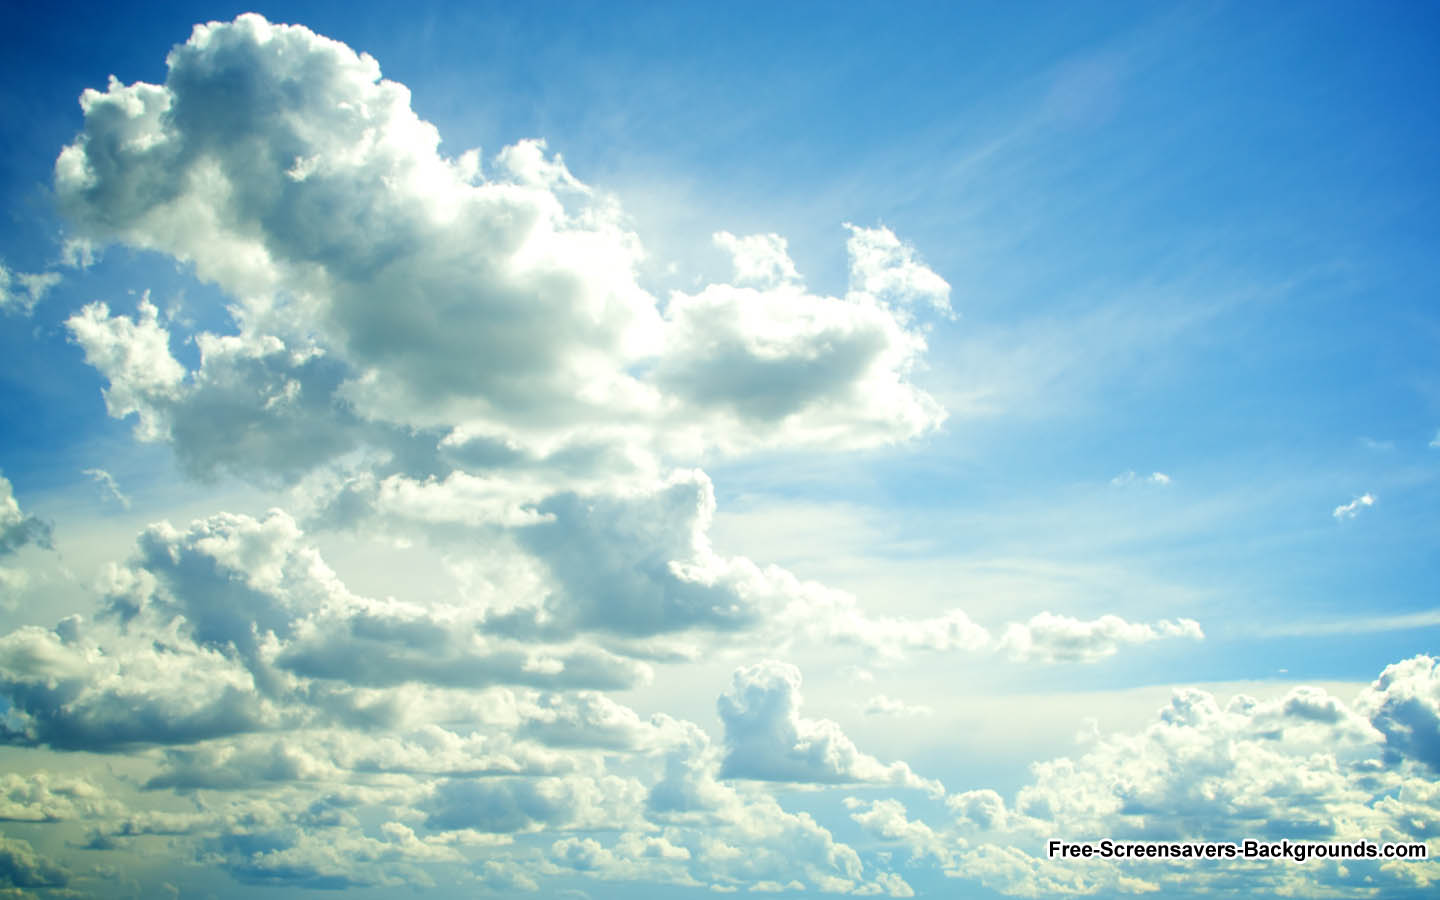 Clouds   Screensavers and Backgrounds 1440x900